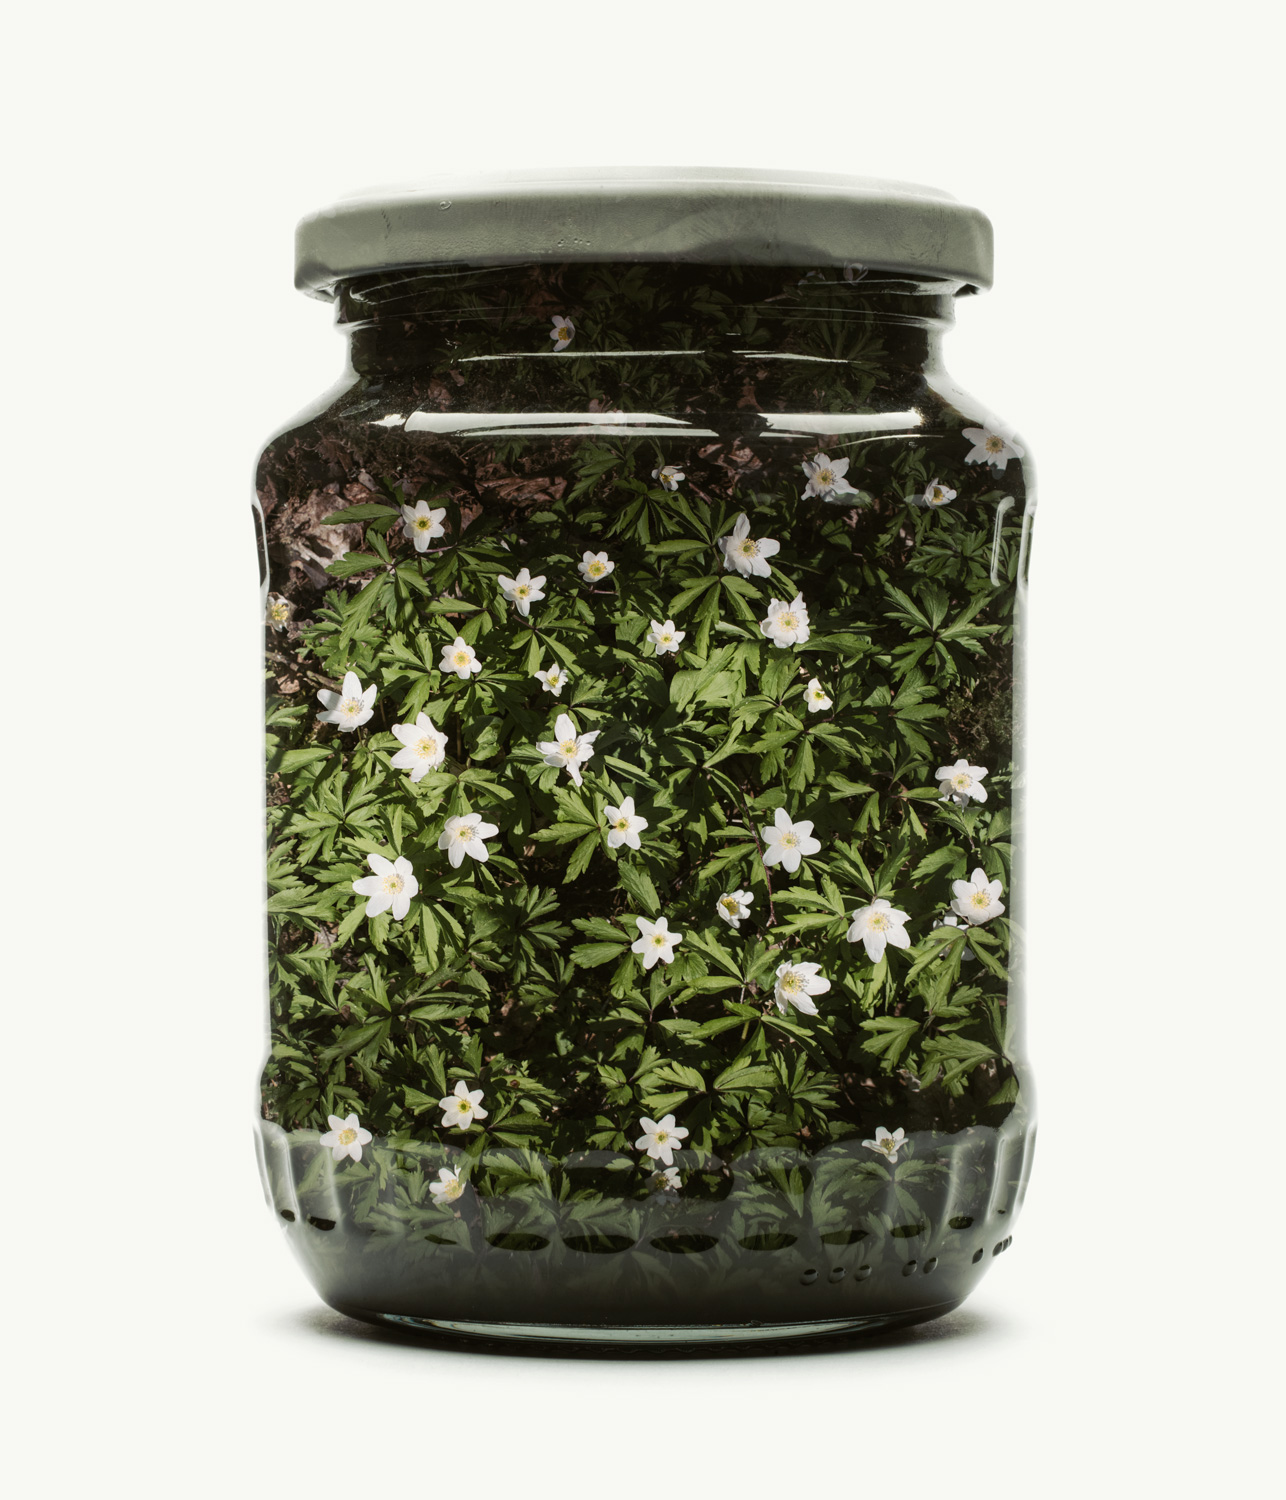 Visual Artwork: Jarred Windflower (Medium) by artist and creator Christoffer Relander